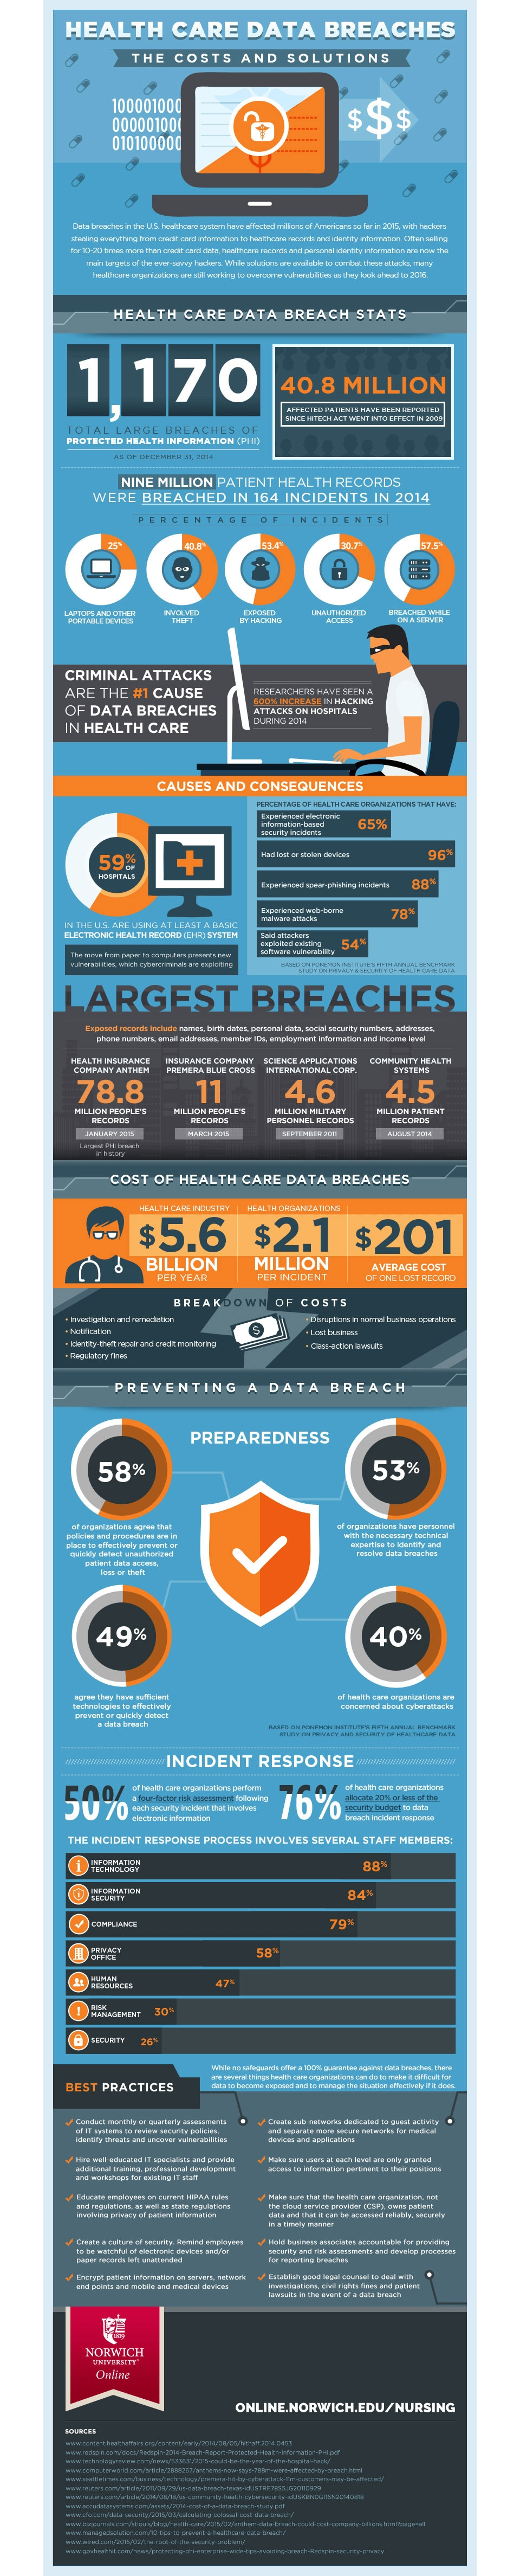 healthcare data breaches infographic image